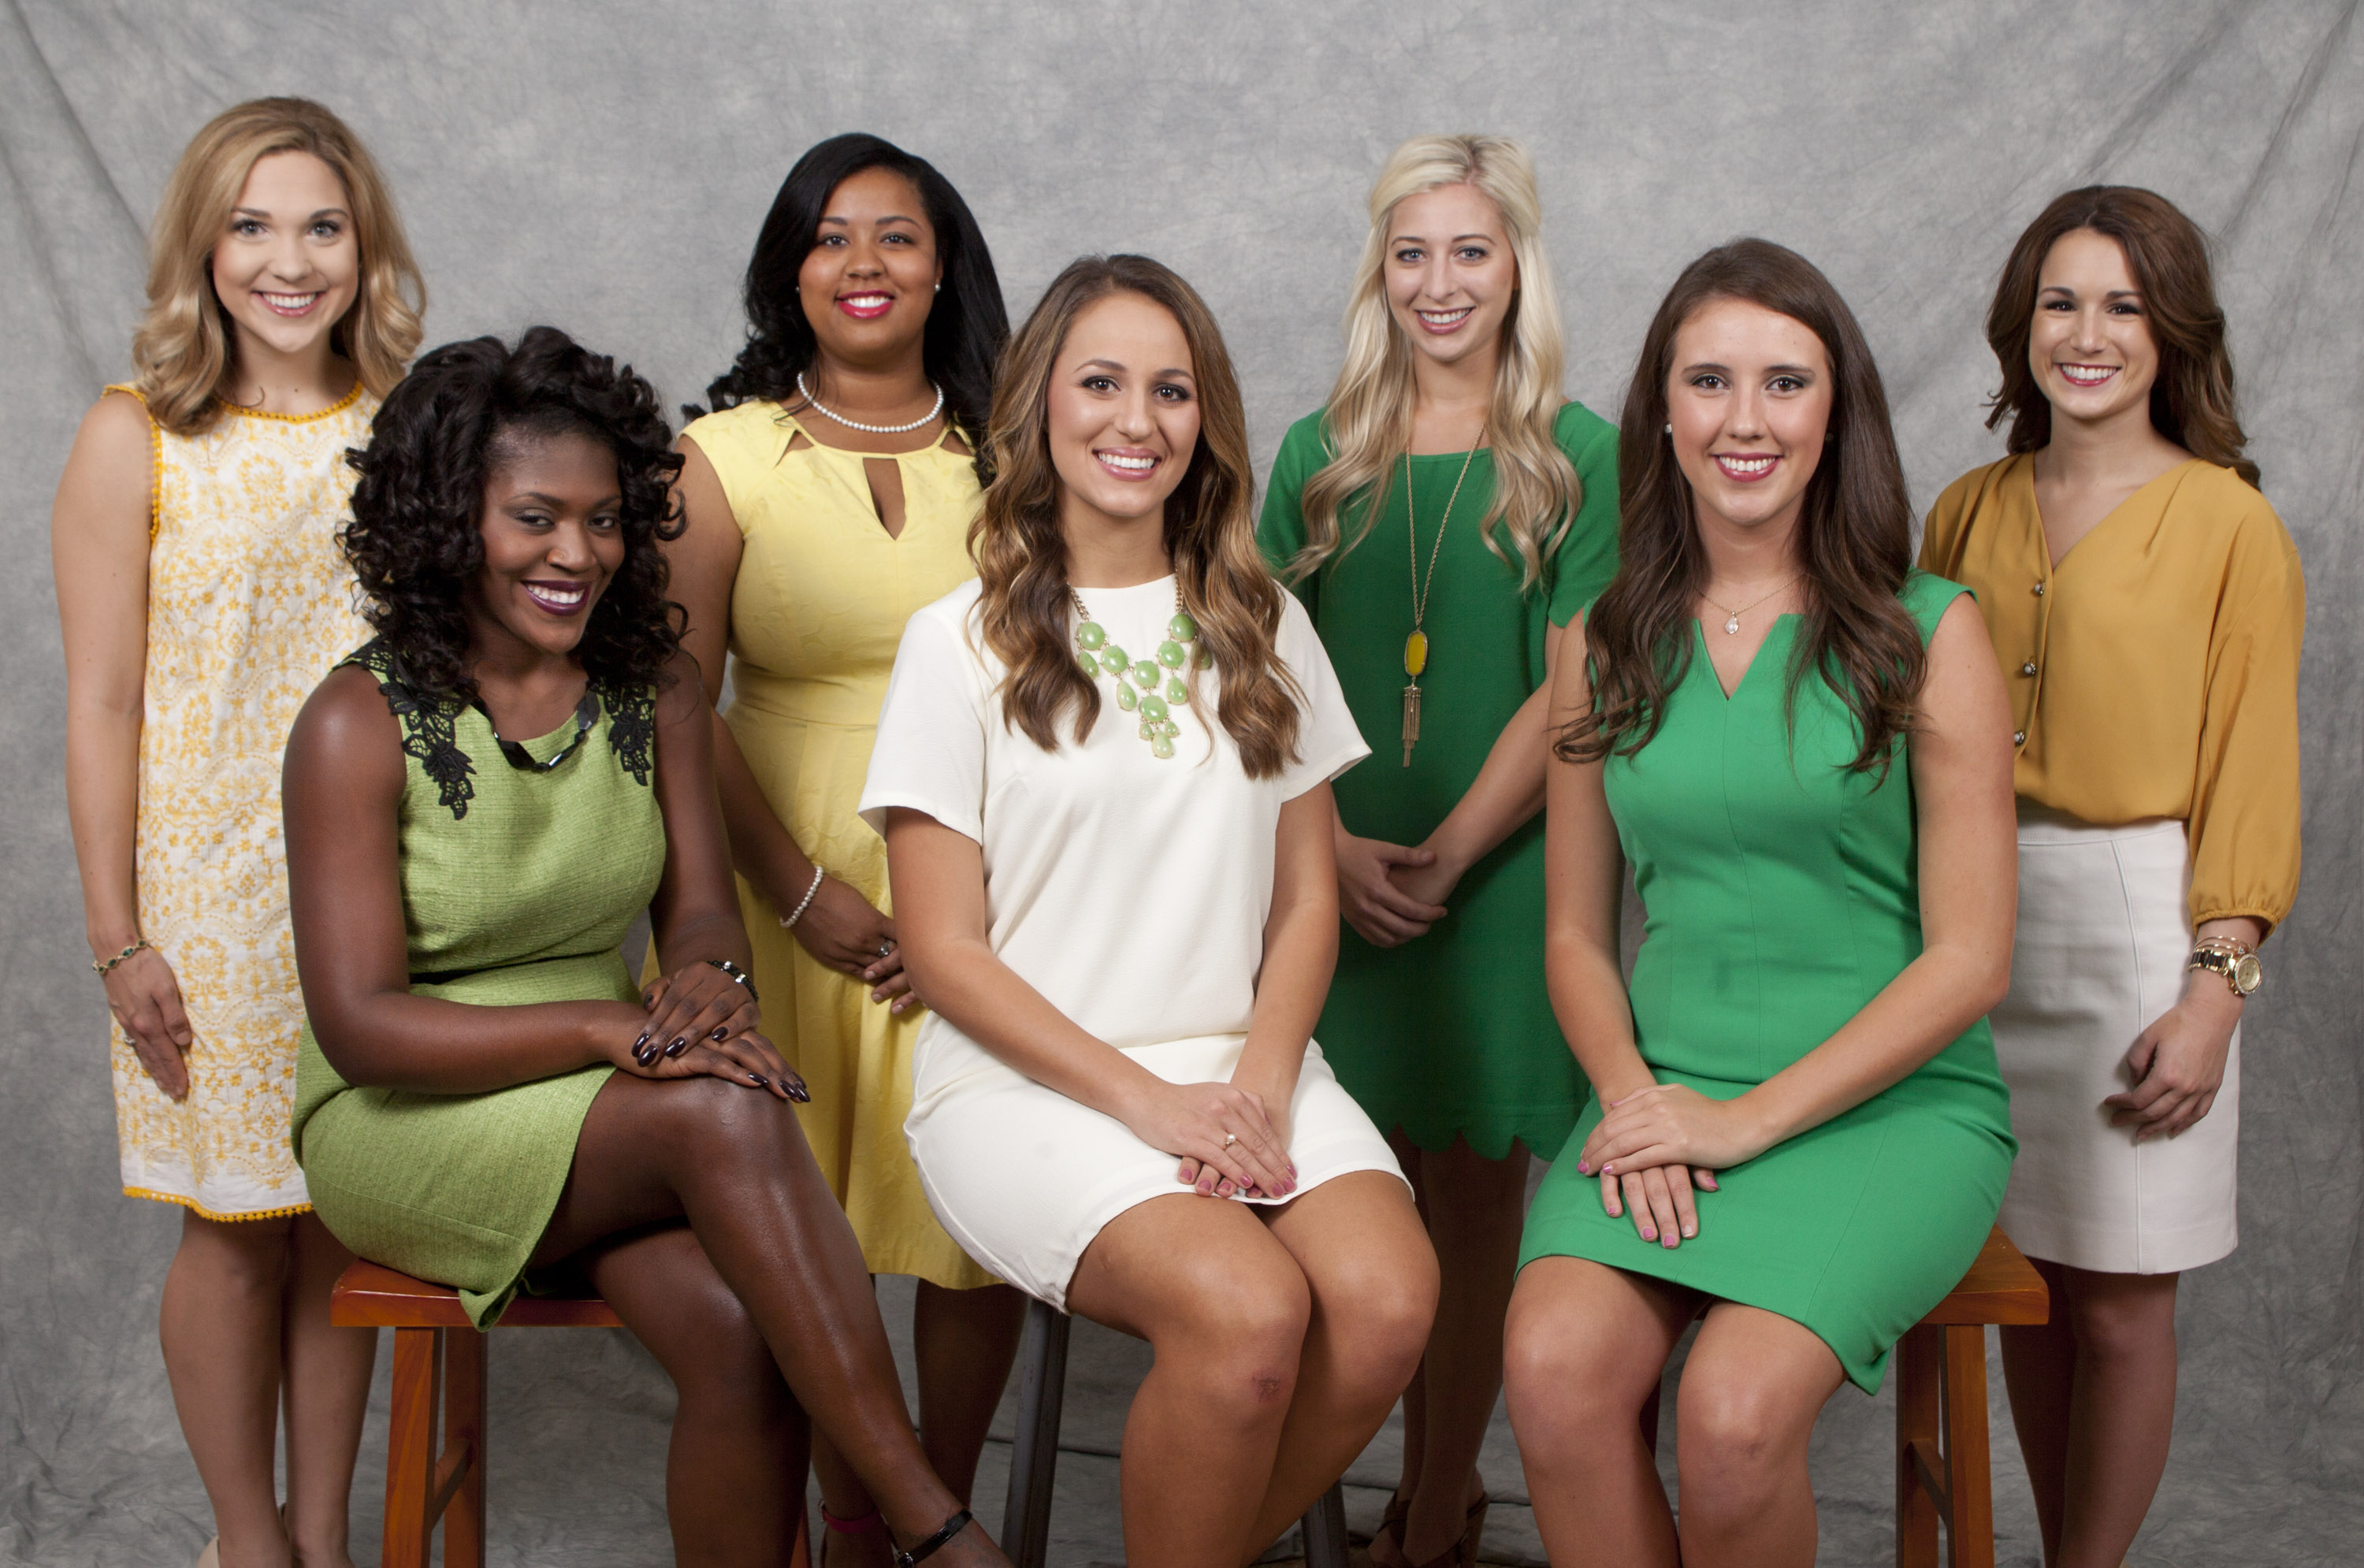 Southeastern announces 2015 Homecoming Court and Beau Court